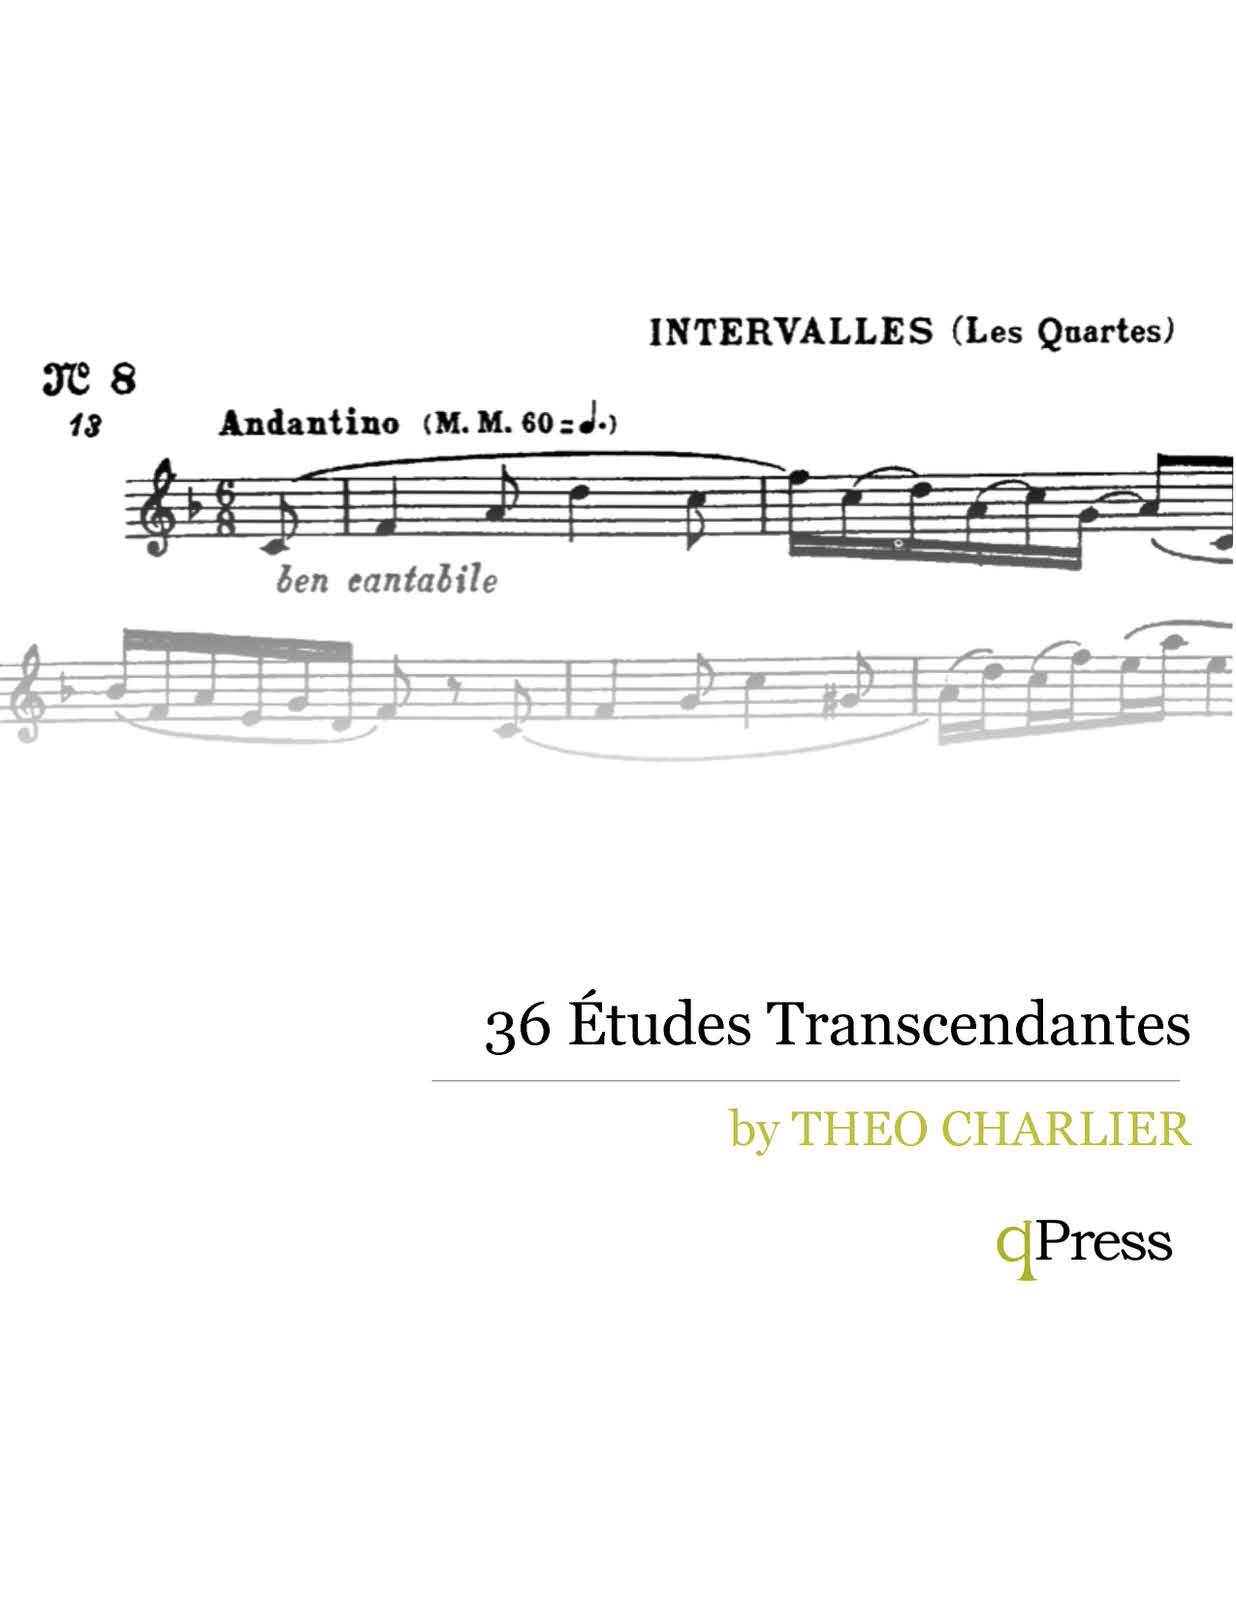 Theo charlier composer -